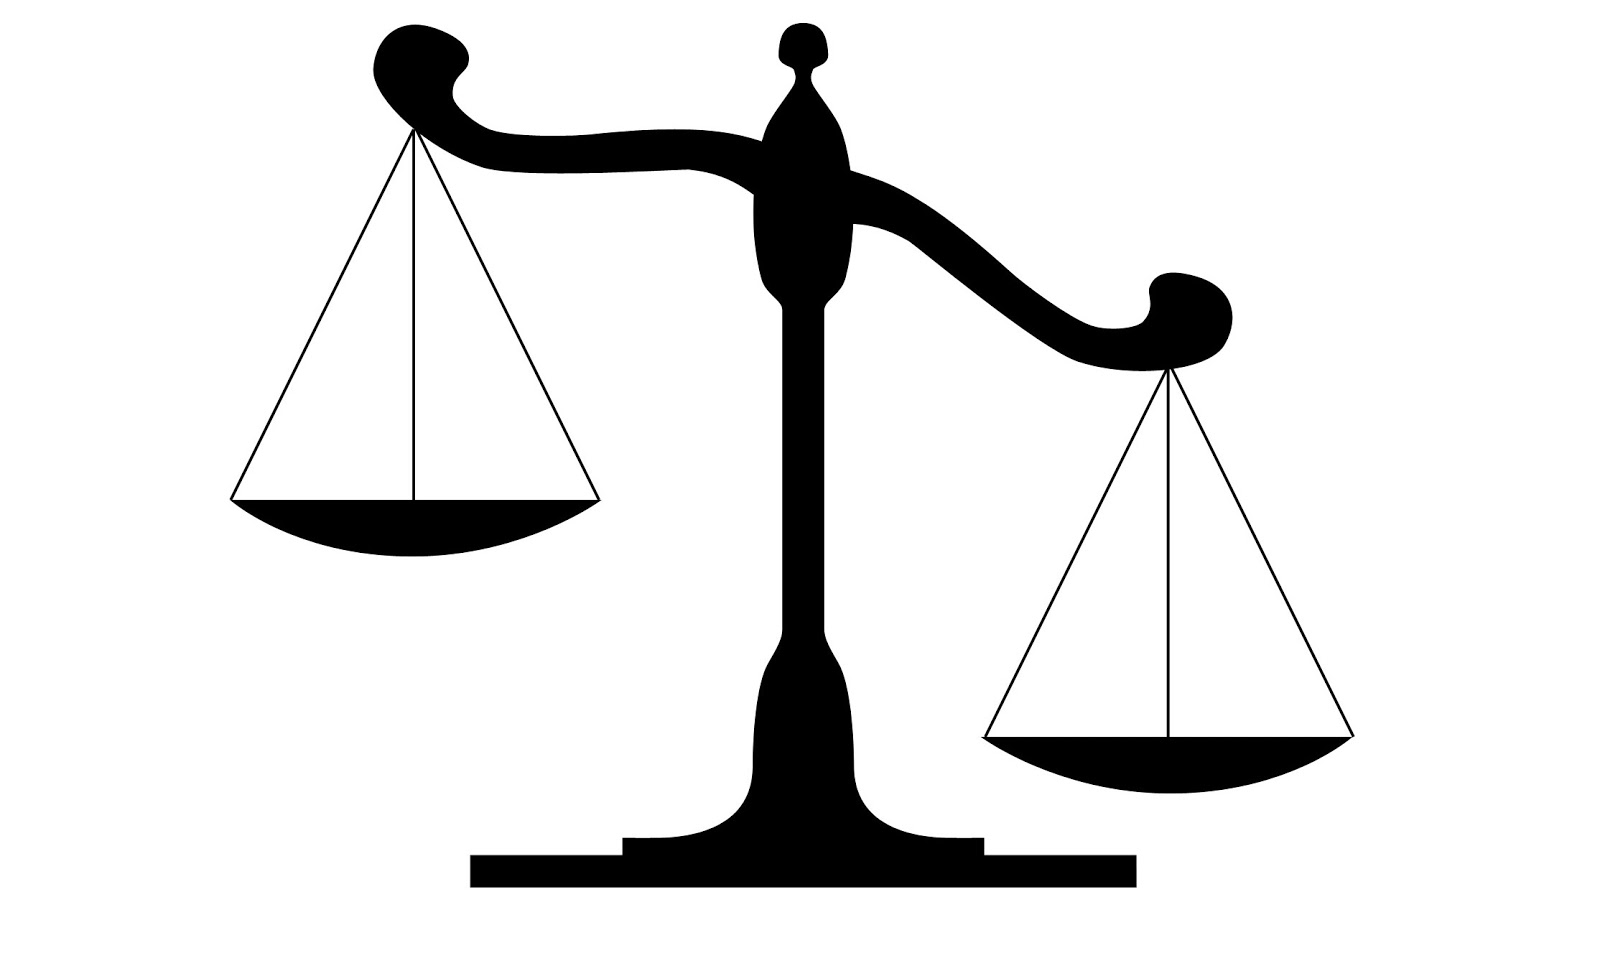 Scale clipart tilted. Related keywords suggestions for